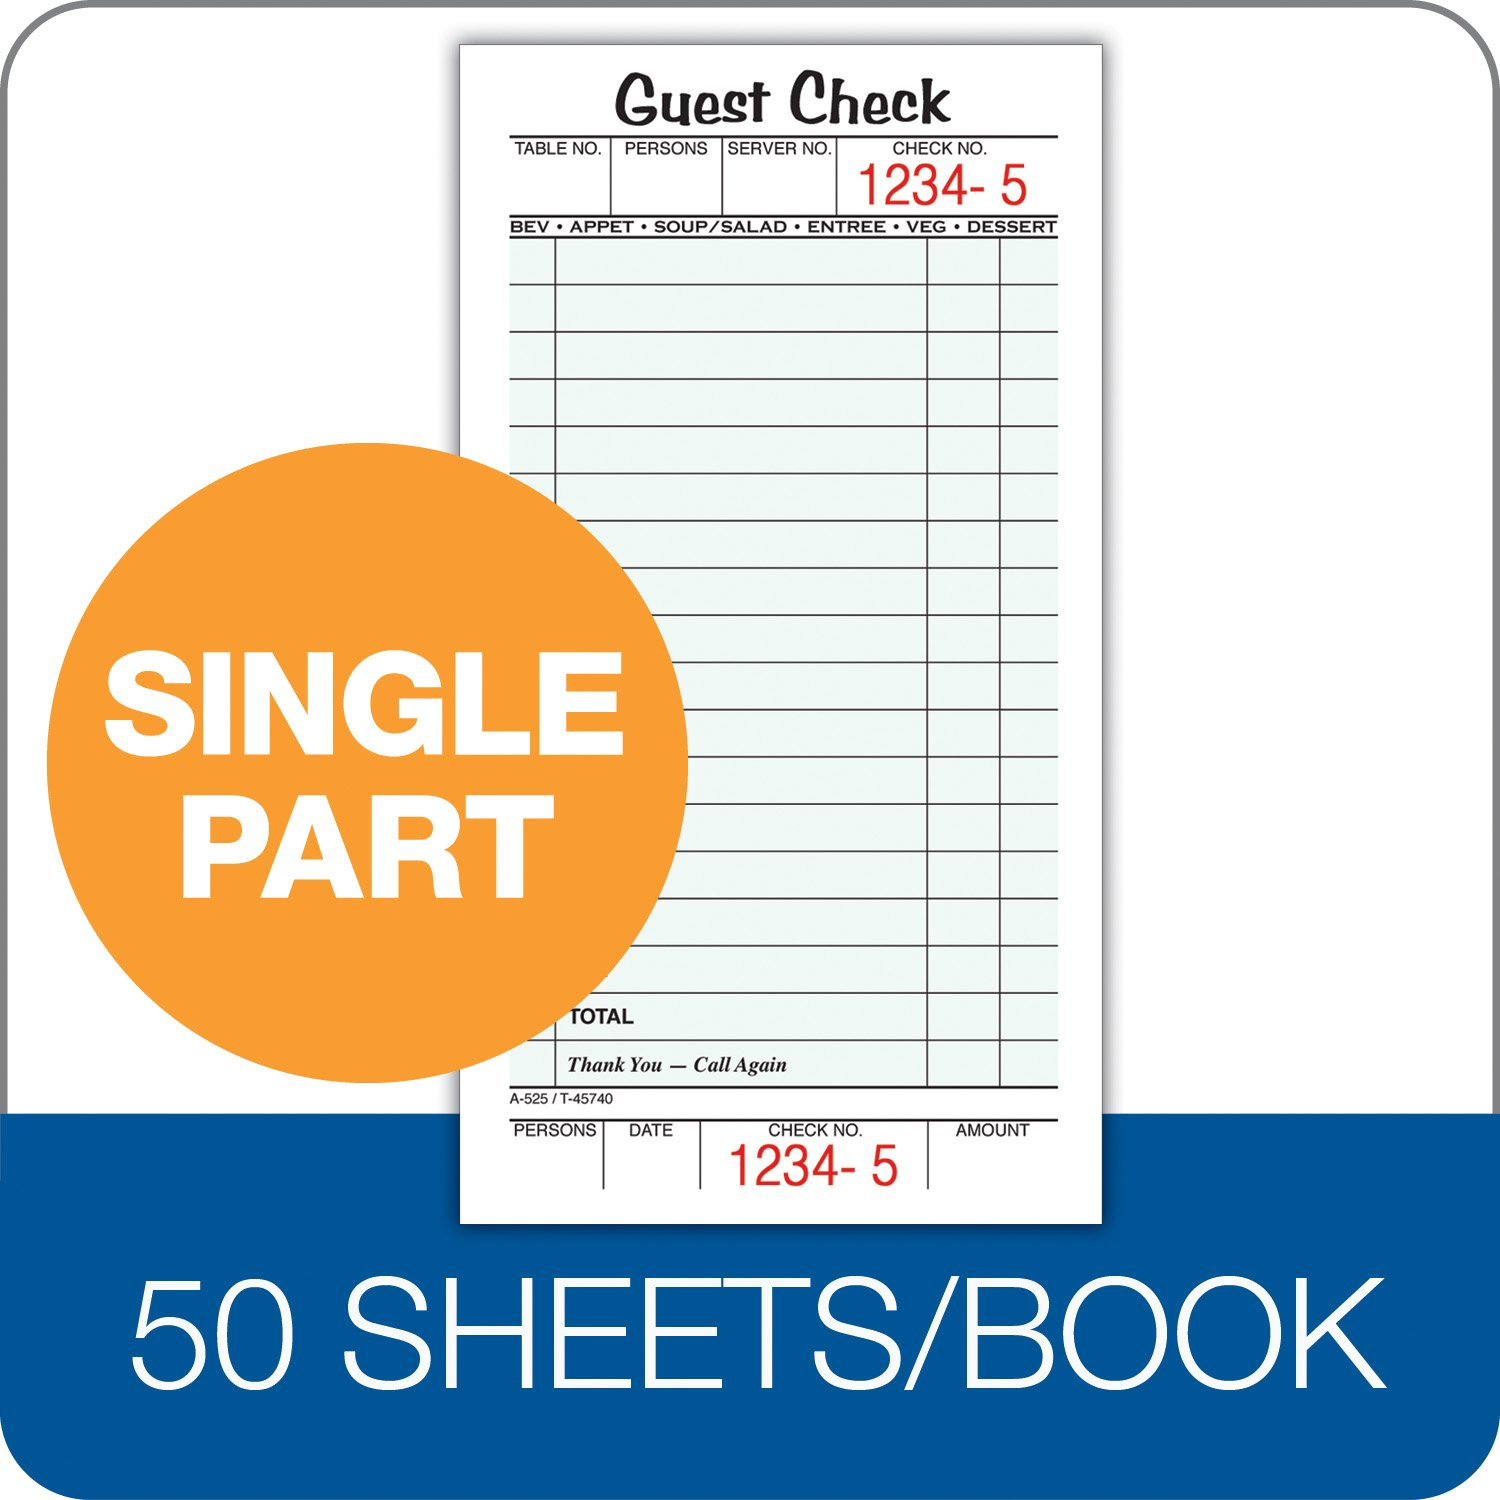 Amazon.com: Adams Guest Check Pads, Single Part, Perforated, White ...